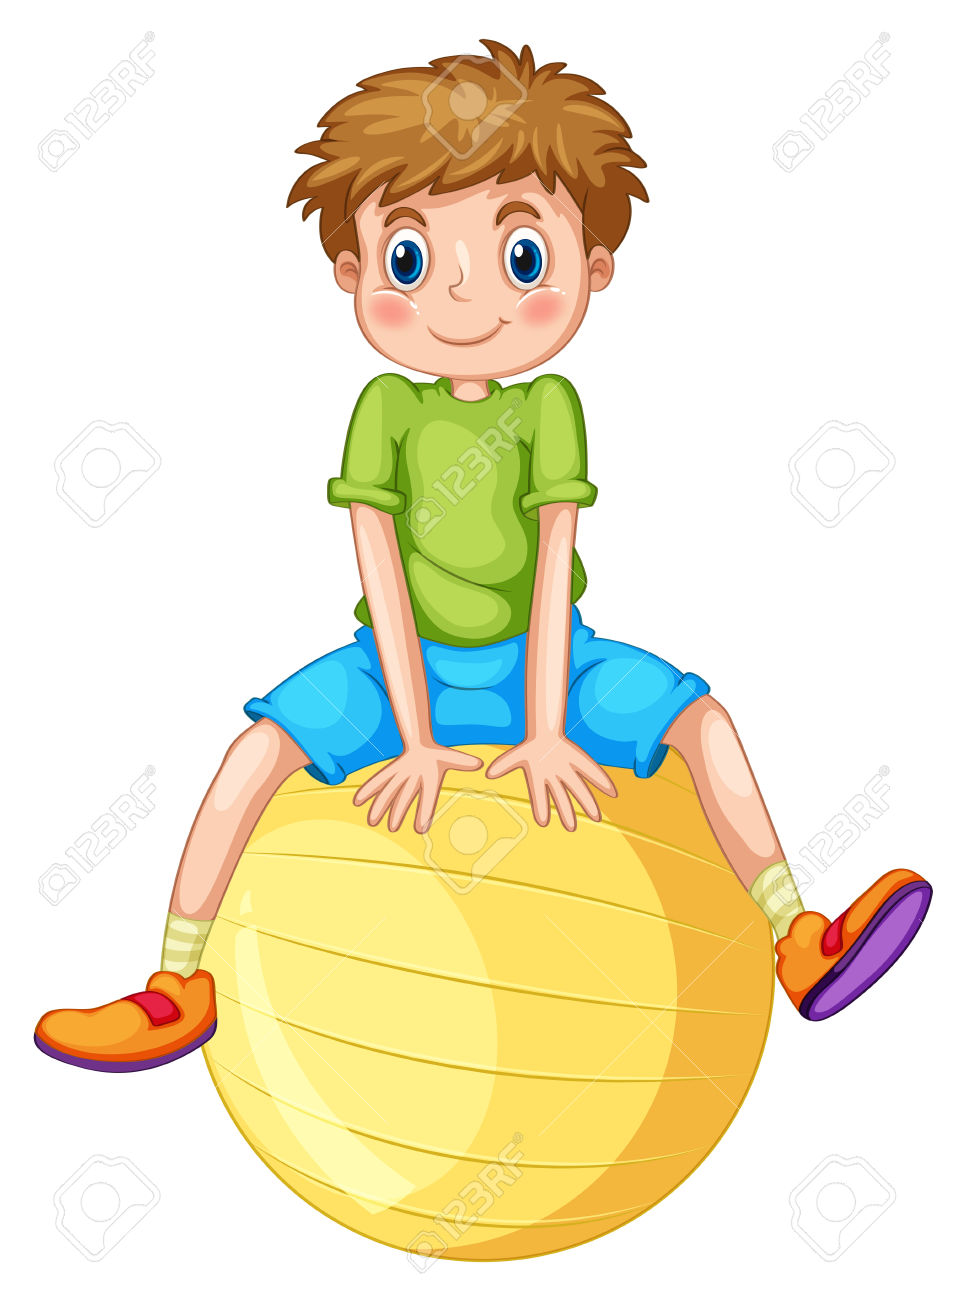 Free Clipart Of Boy Sitting On Excercise Ball.